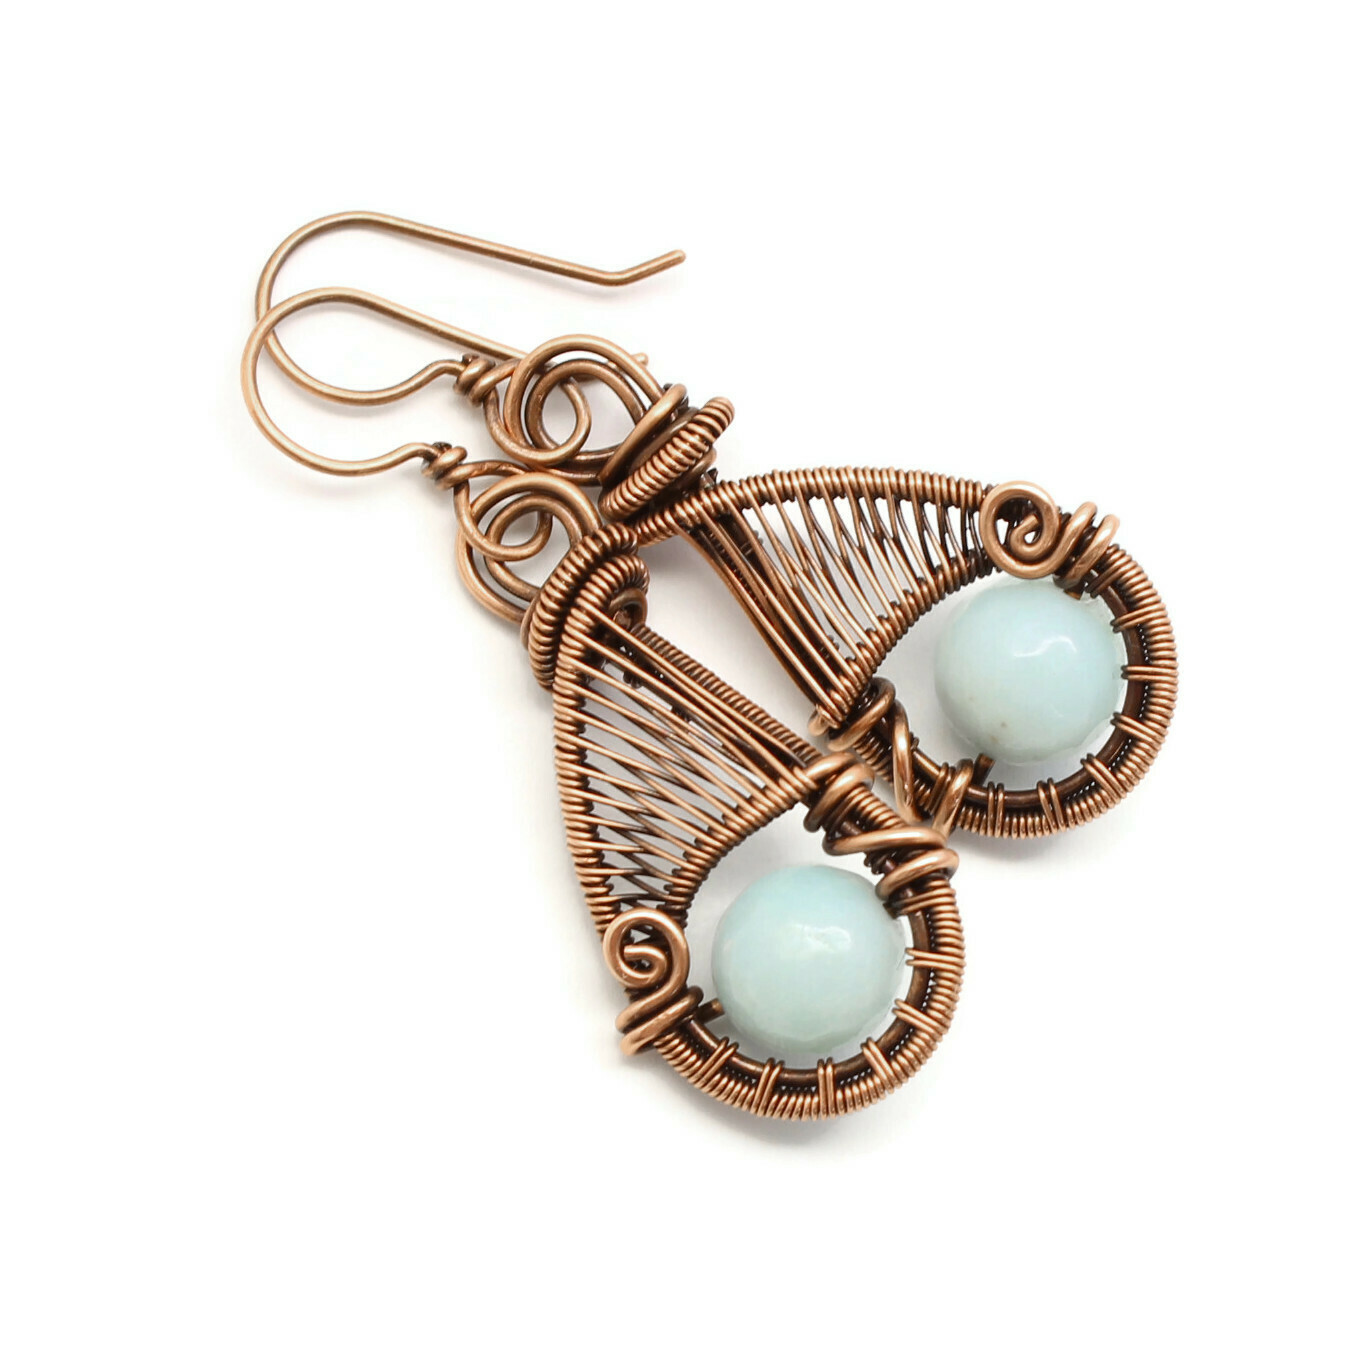 Copper woven wire earrings with amazonite gemstones.